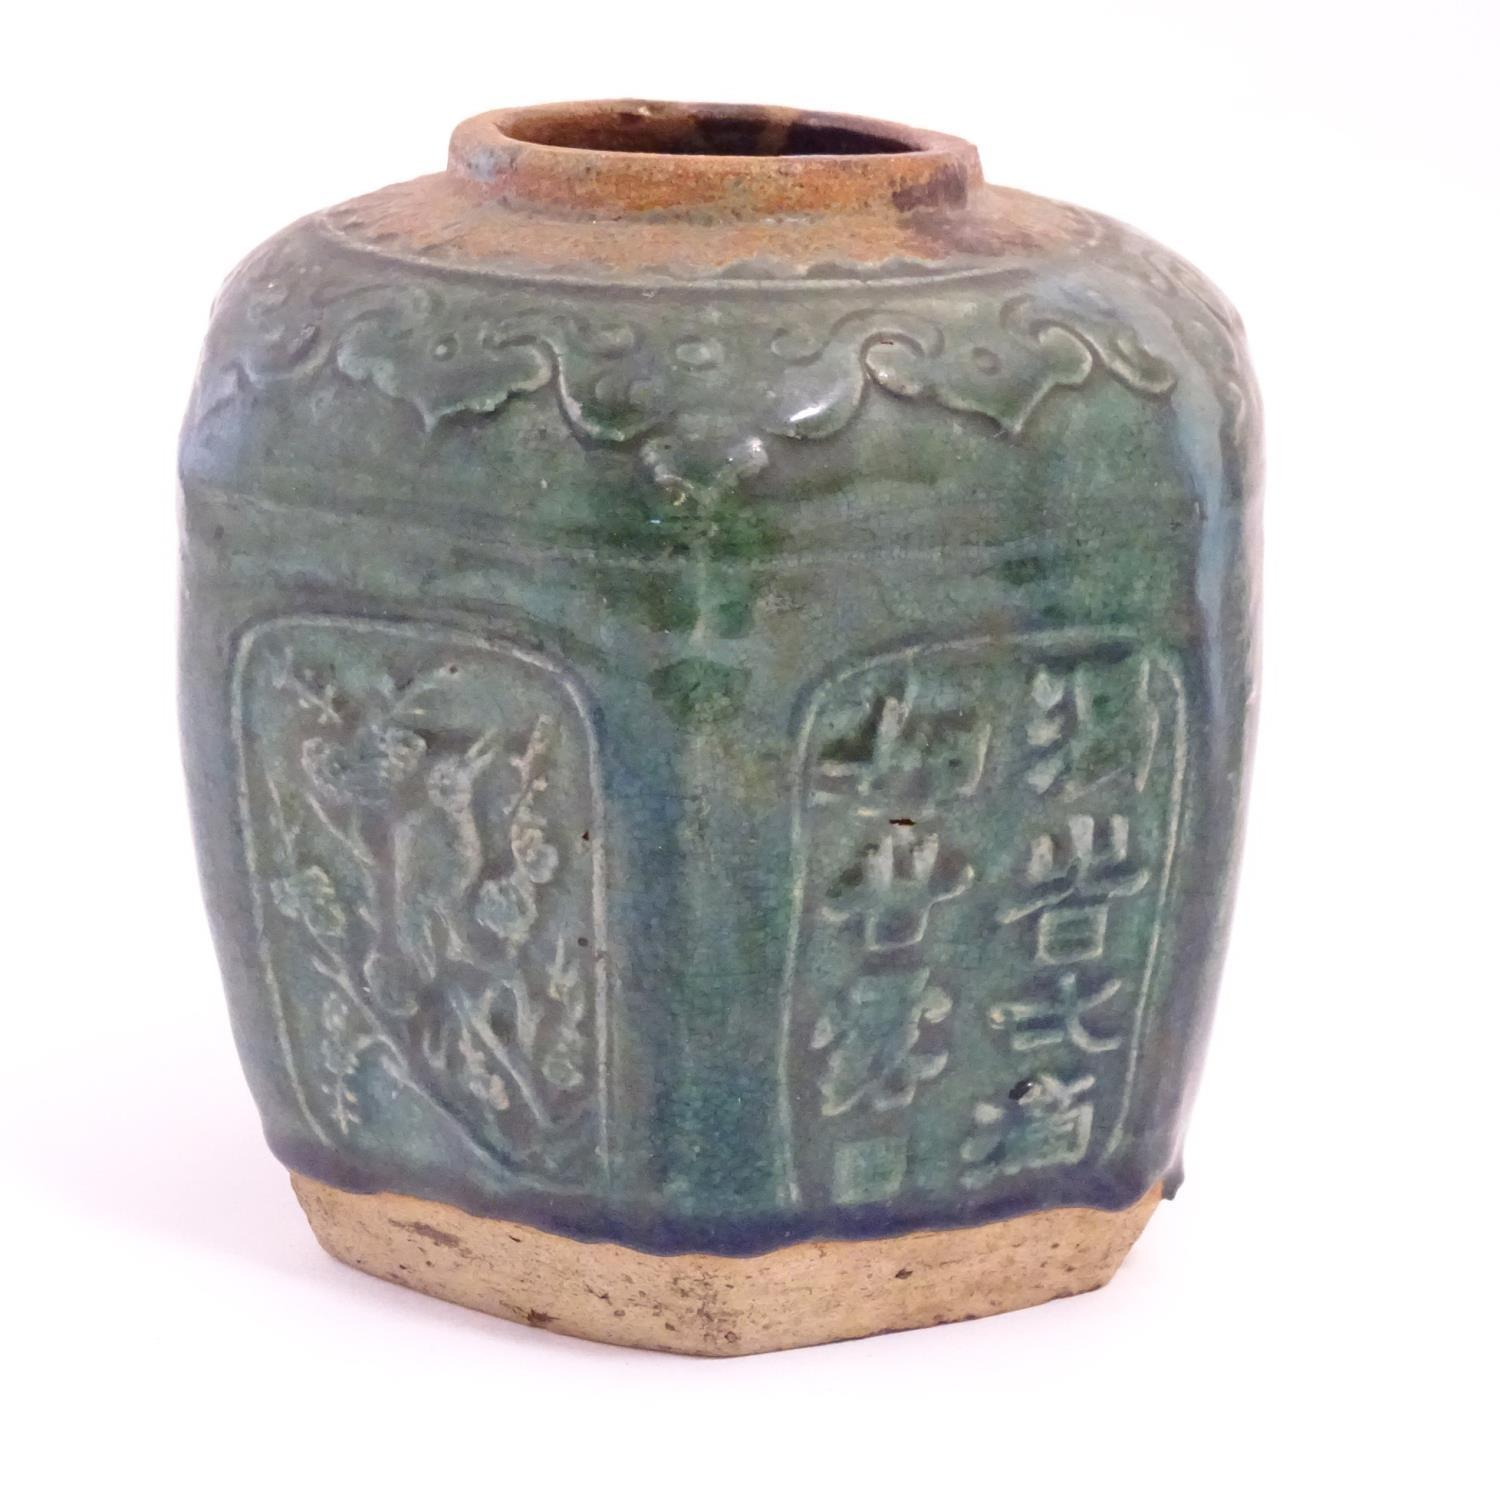 A Chinese hexagonal Shiwan ginger jar / vase with moulded floral, foliate, bird and script detail - Image 3 of 5